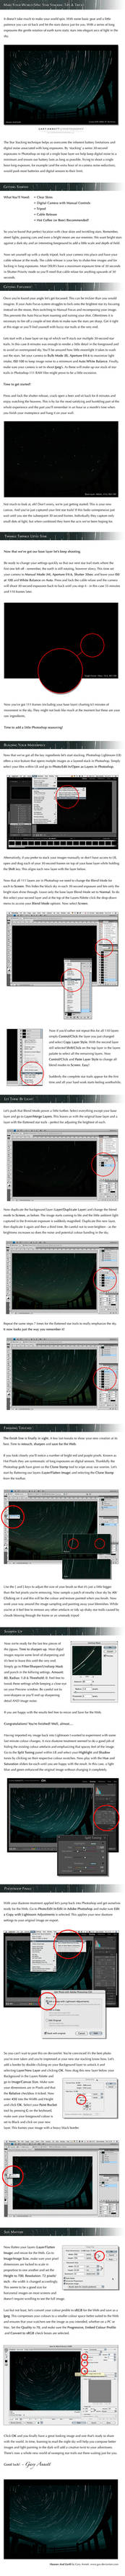 Star Trails Tutorial